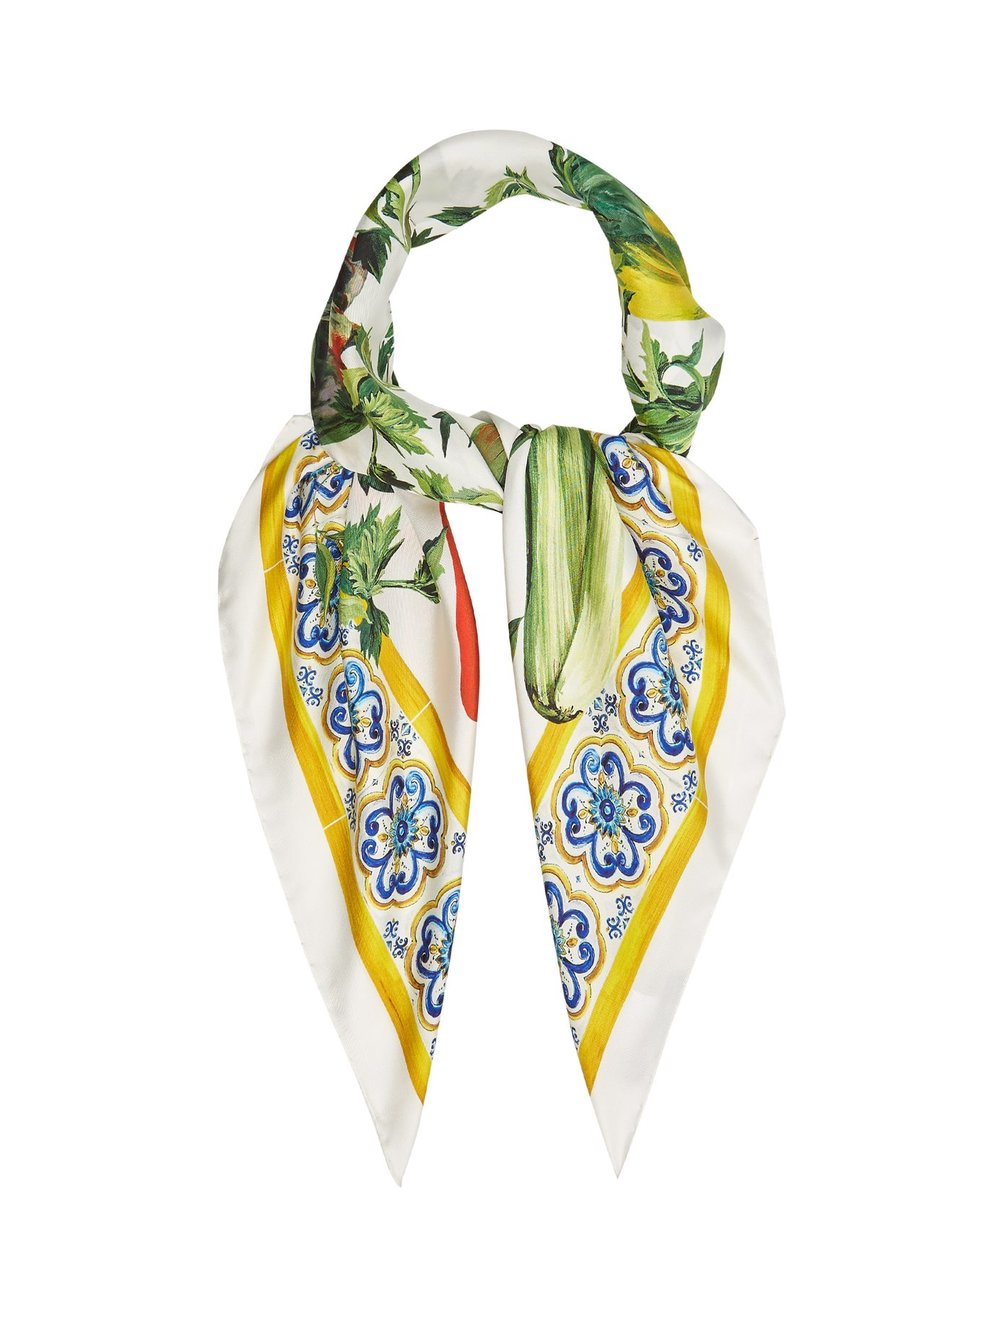 Silk scarf, £295 by Dolce & Gabbana at Matches